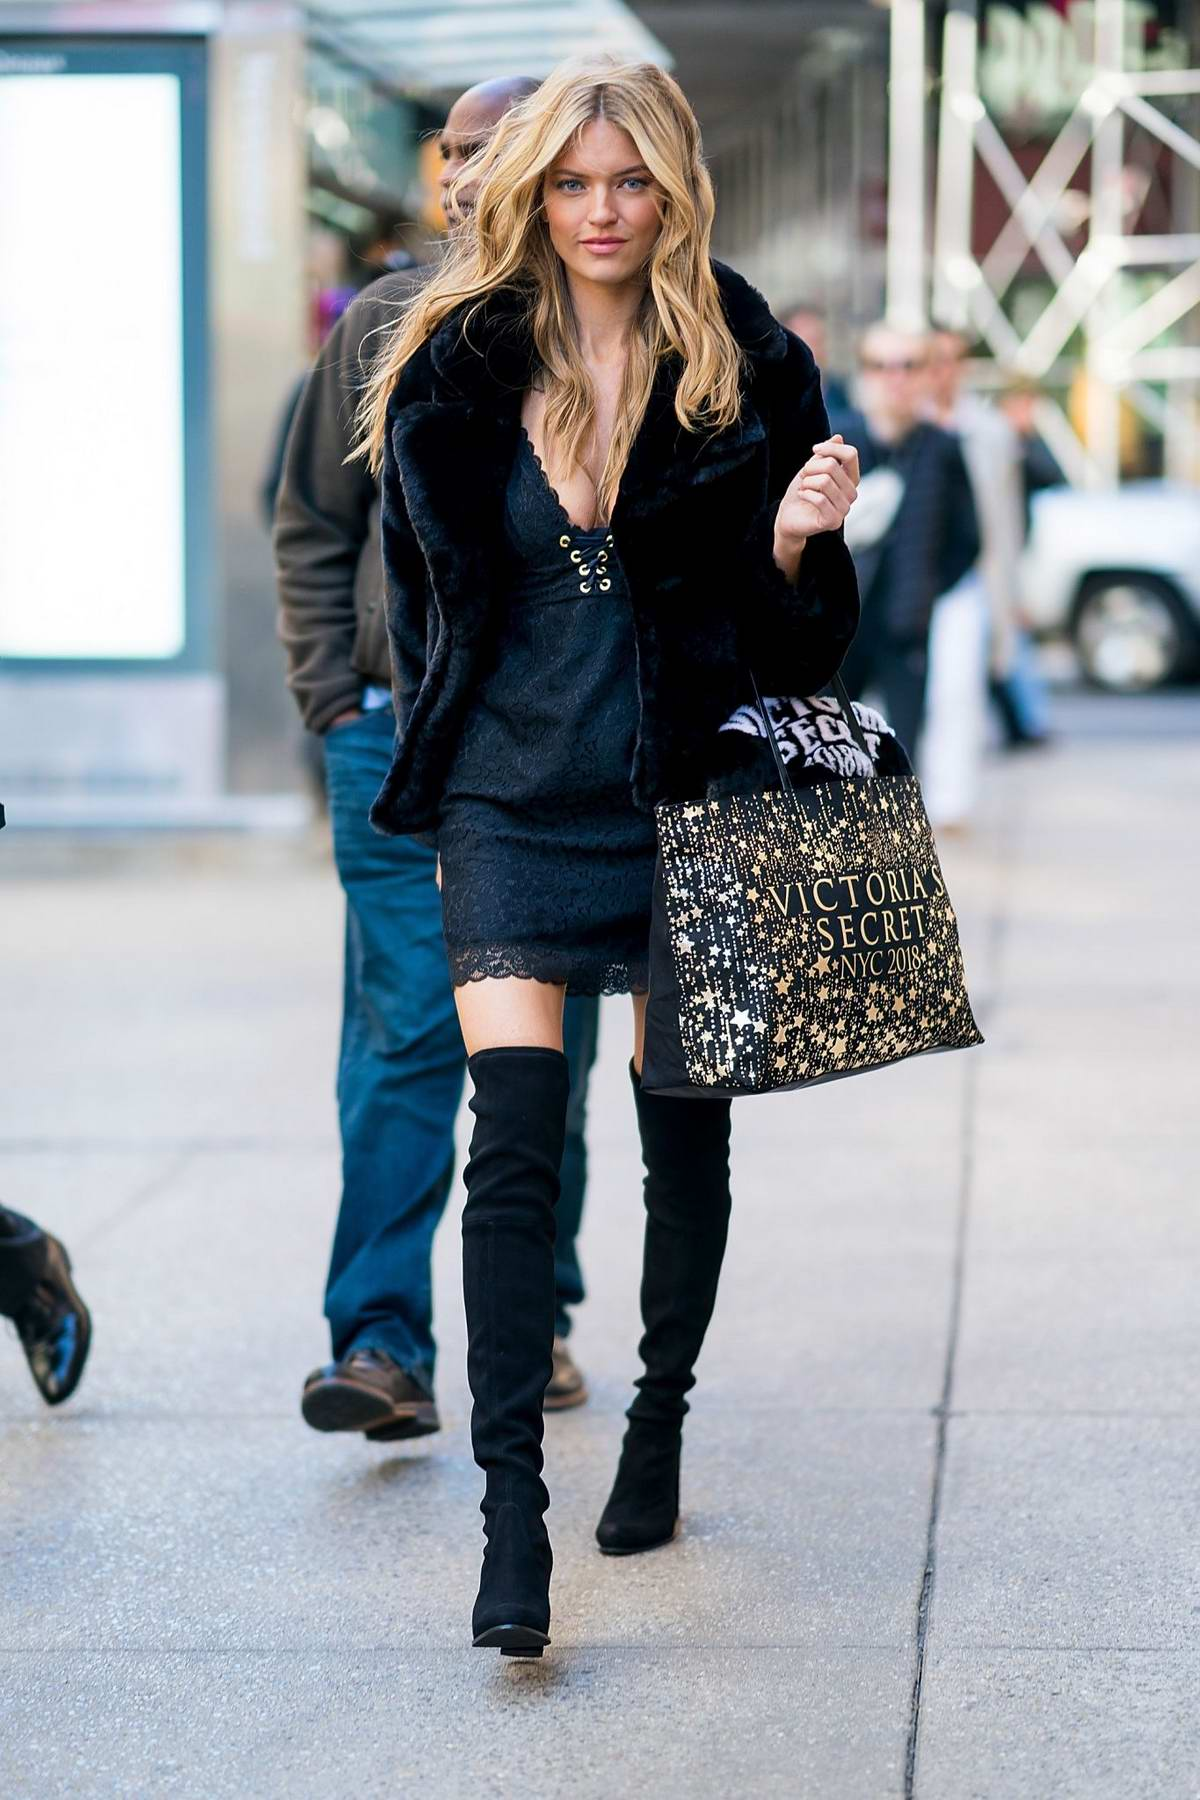 Martha Hunts rocks black fur jacket over a short black dress with thigh high boots as she arrive for her fittings at the Victoria's Secret offices in New York City